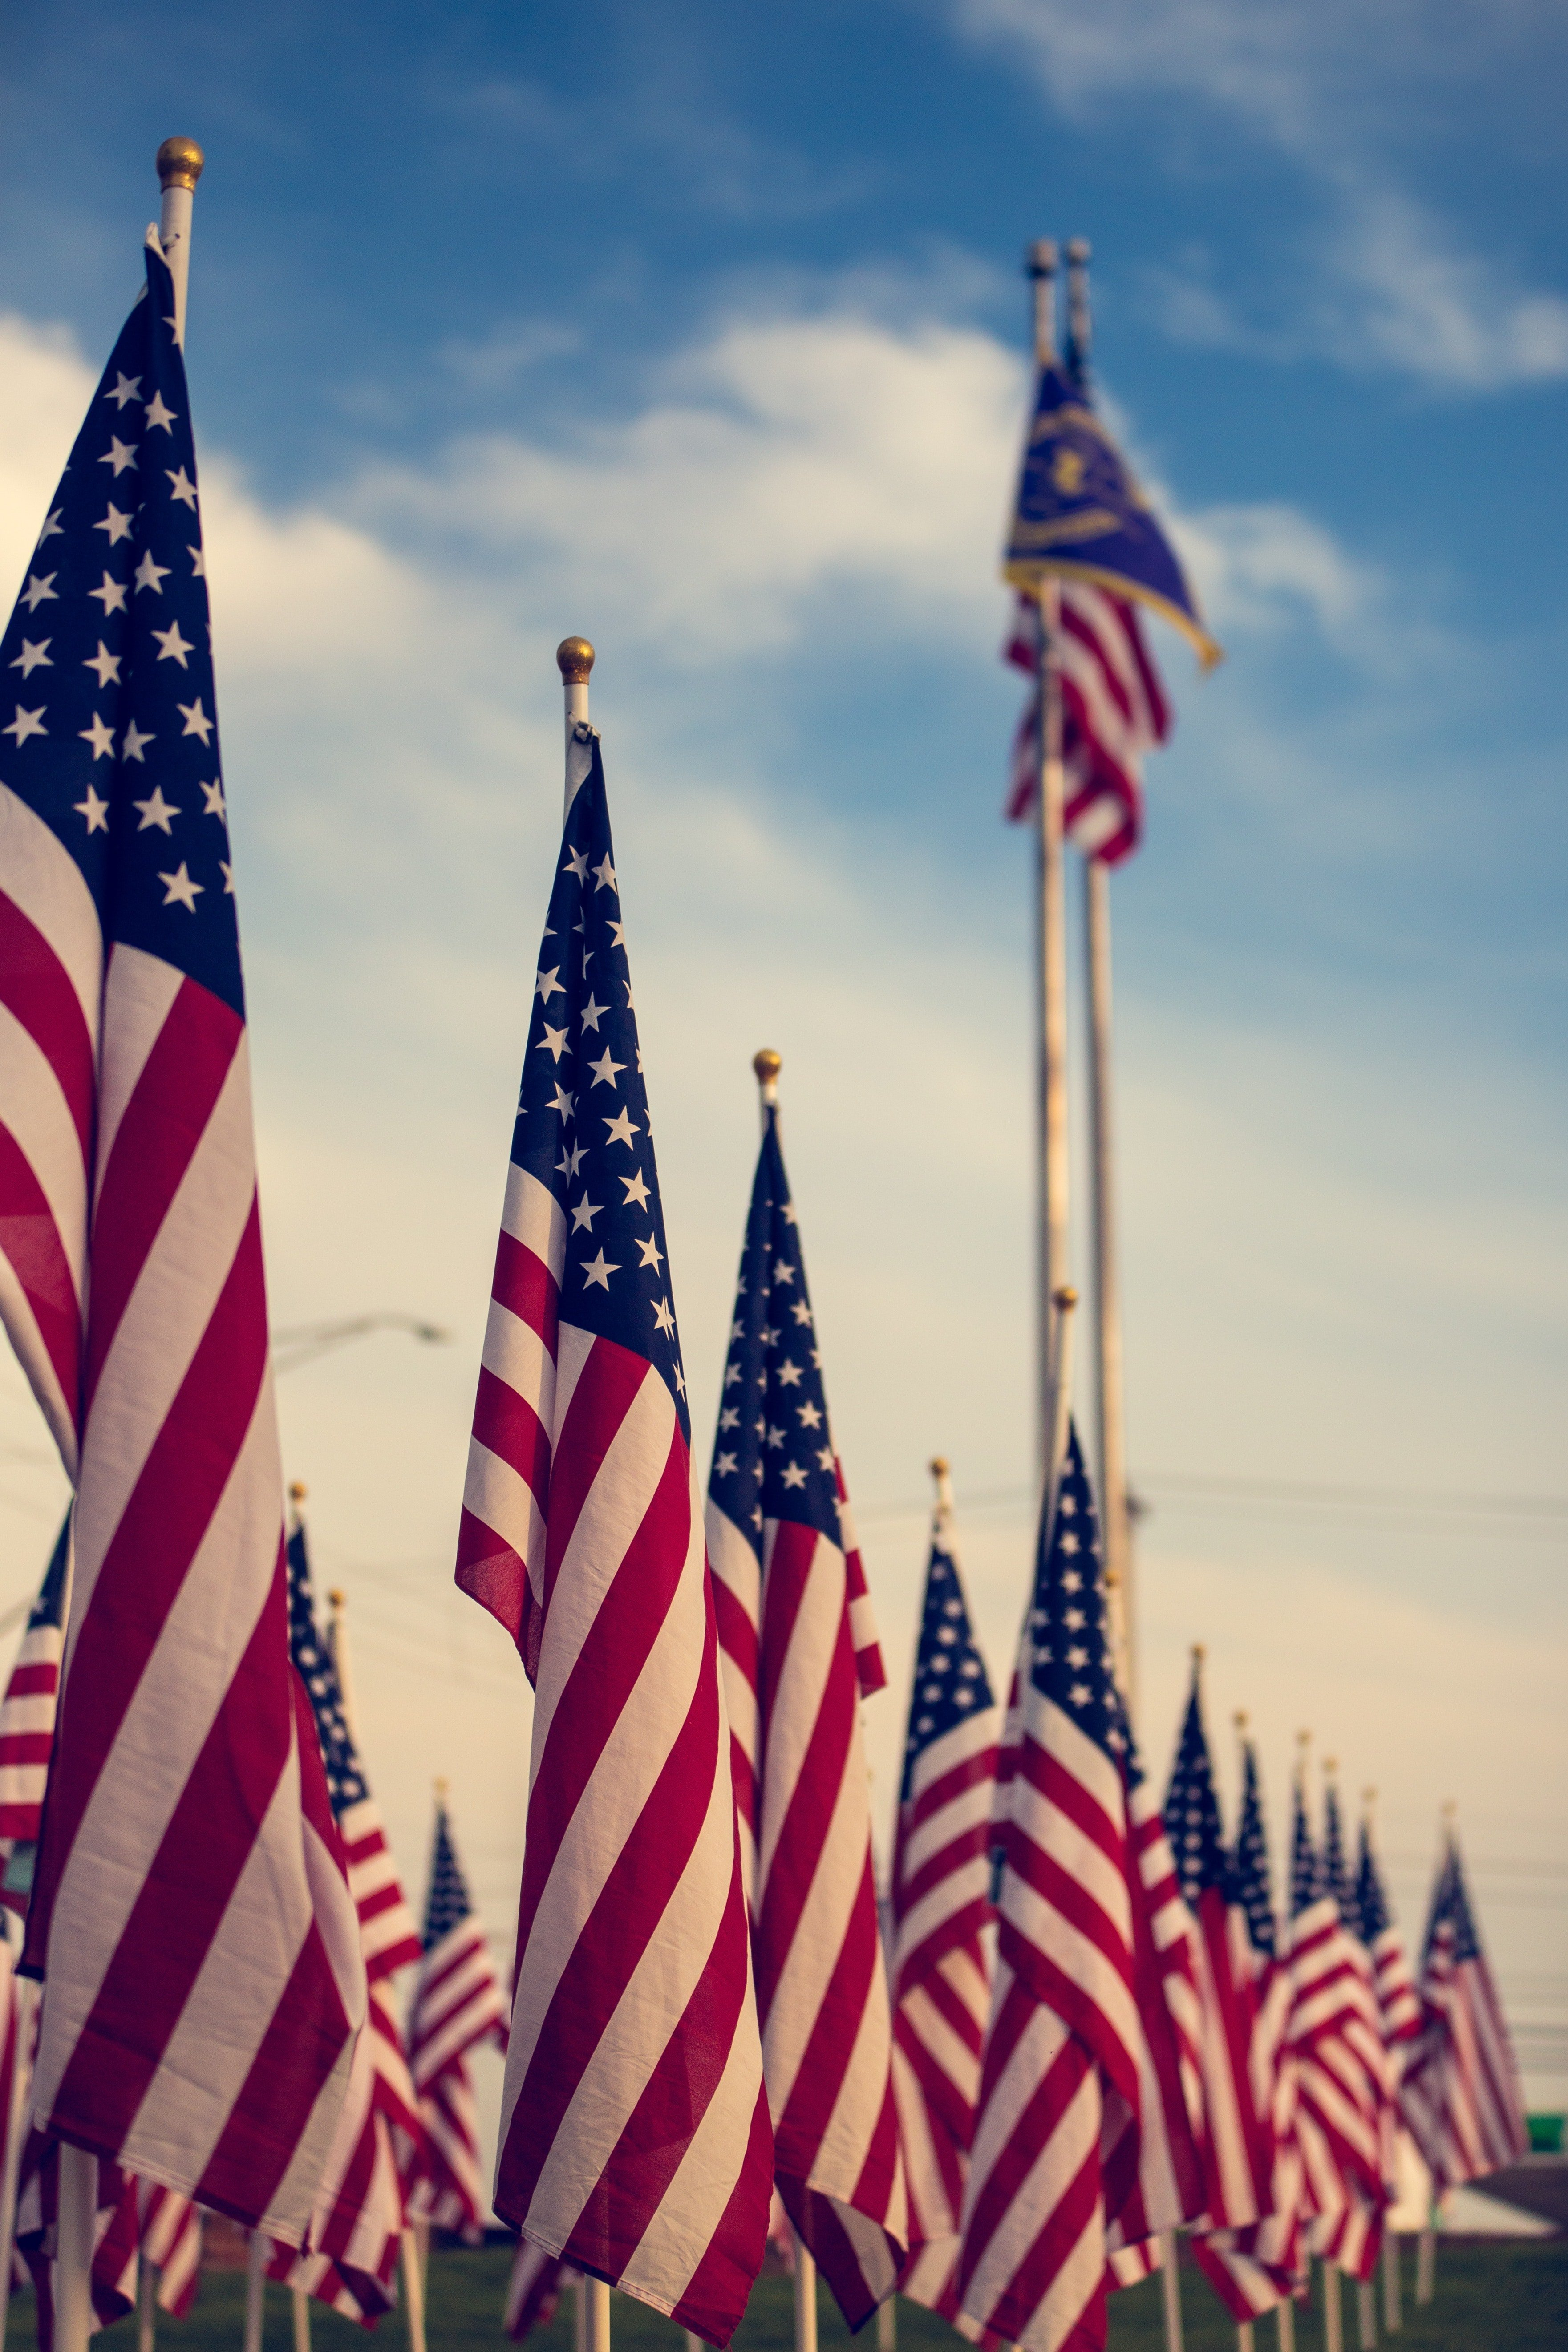 American flags lined-up | Photo: Pexels